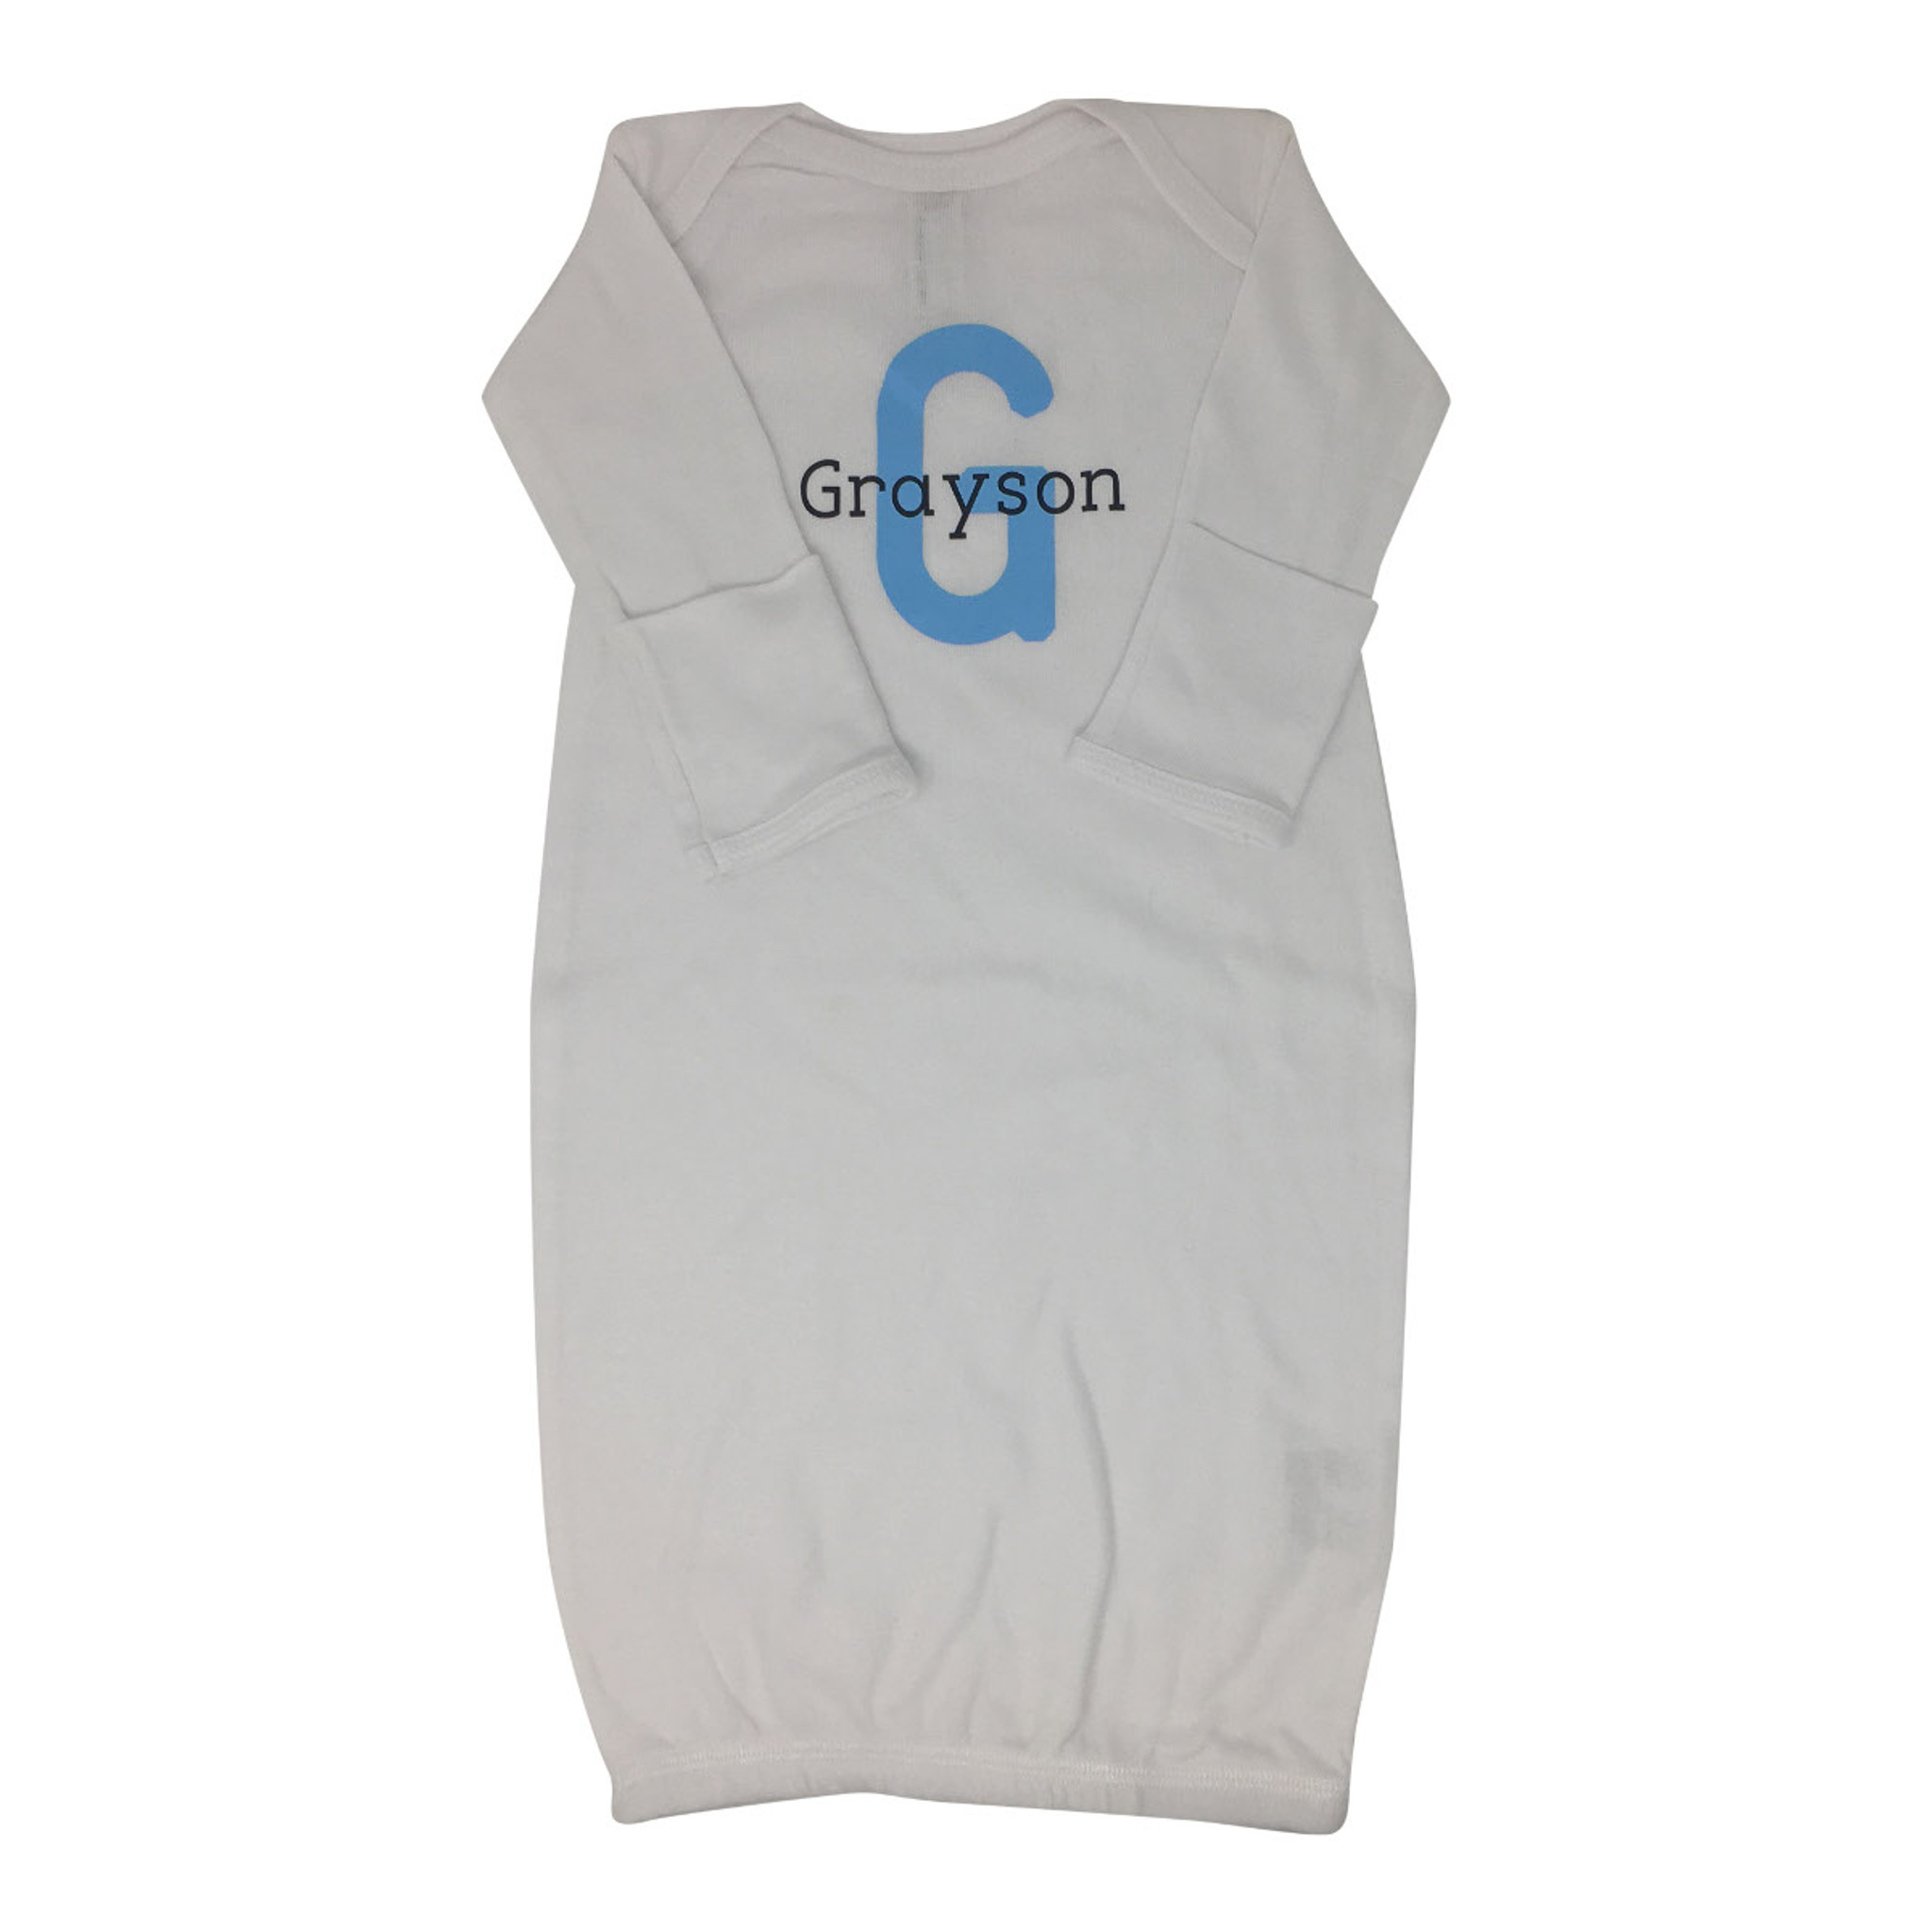 """A white baby onesie with the name """"Grayson"""" and a large blue letter """"G"""" inscribed on the chest."""